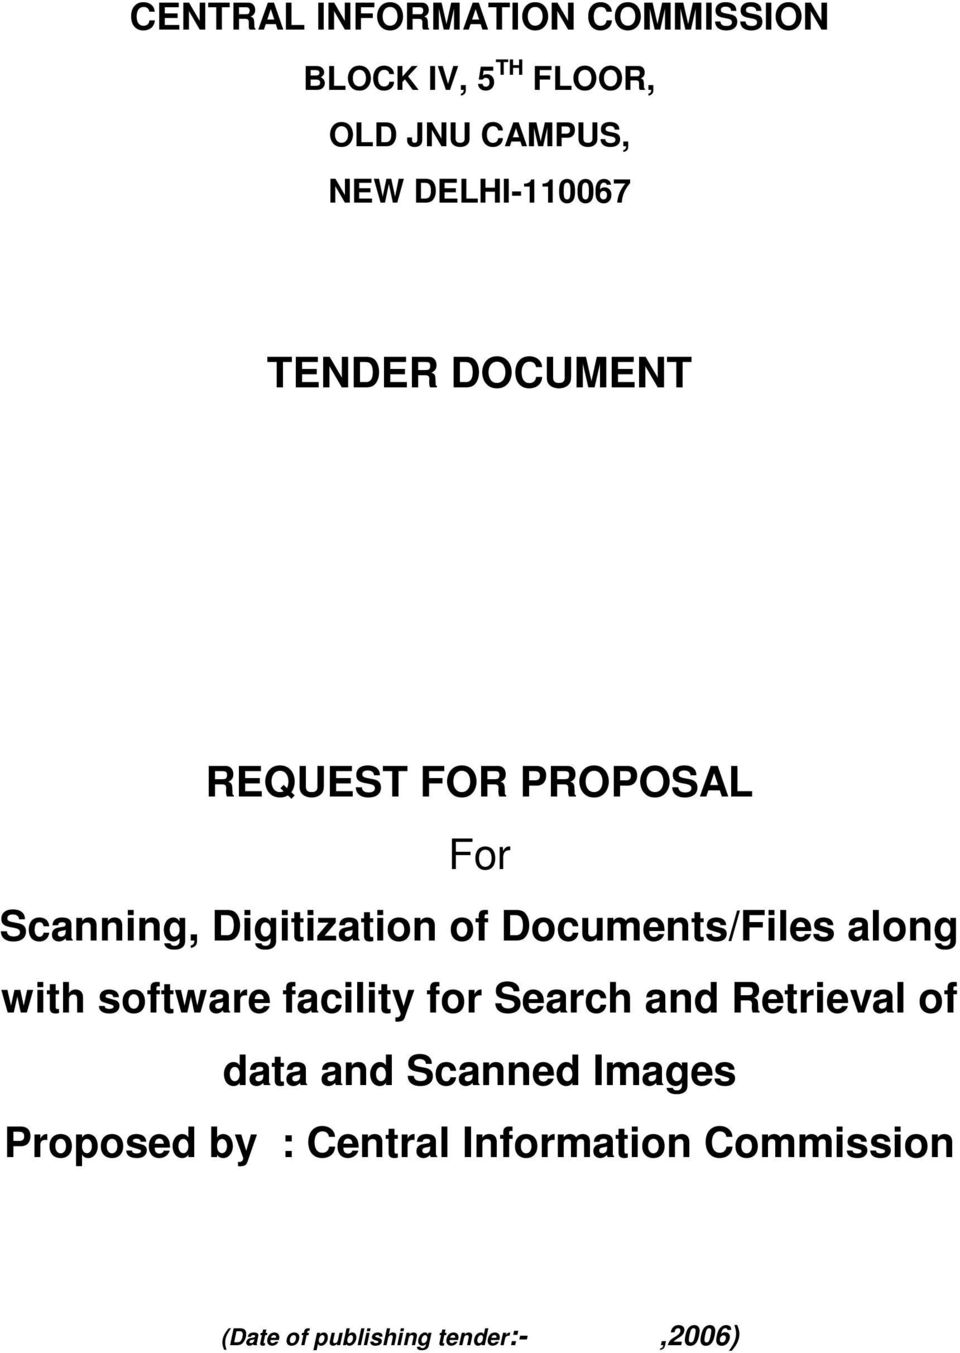 Documents/Files along with software facility for Search and Retrieval of data and